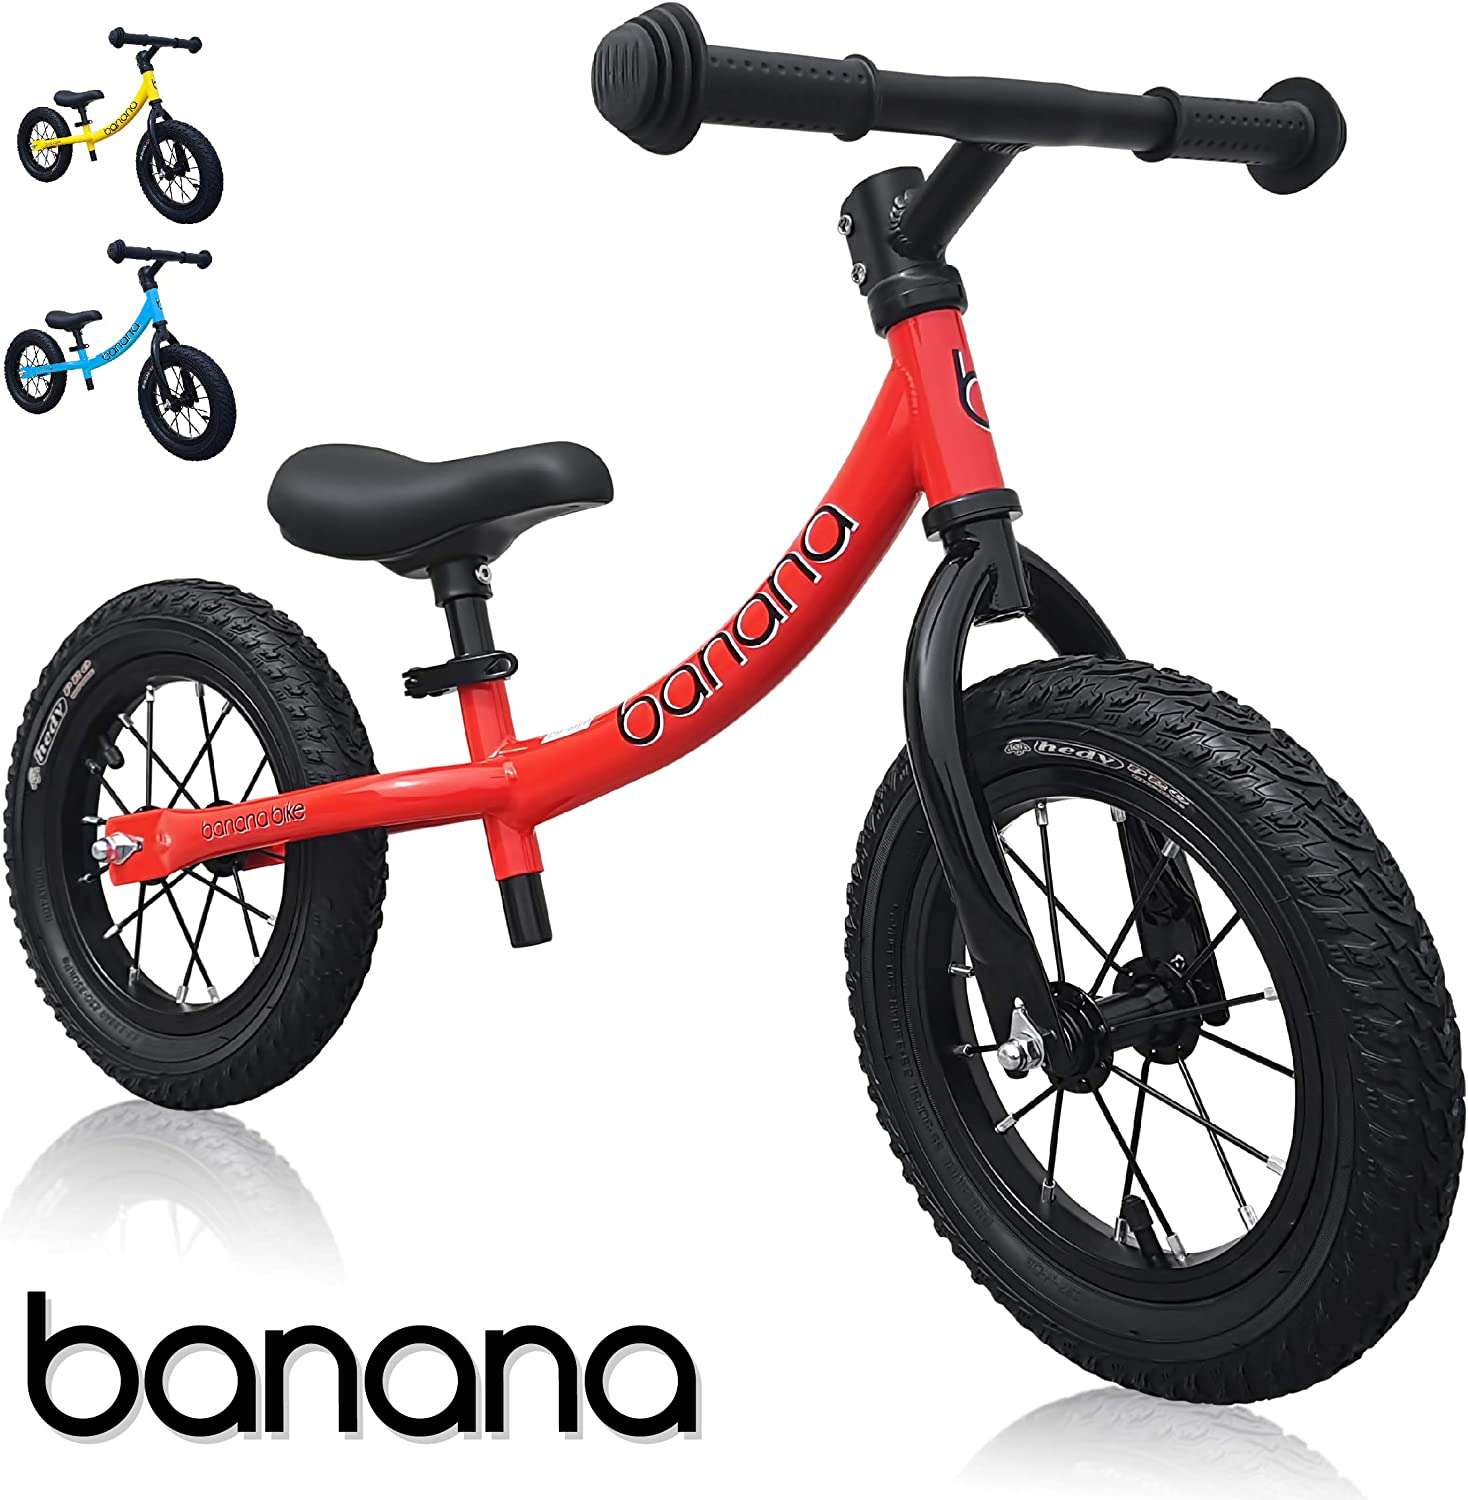 Top 10 Best Balance Bikes For Toddlers 2020 Reviews 3